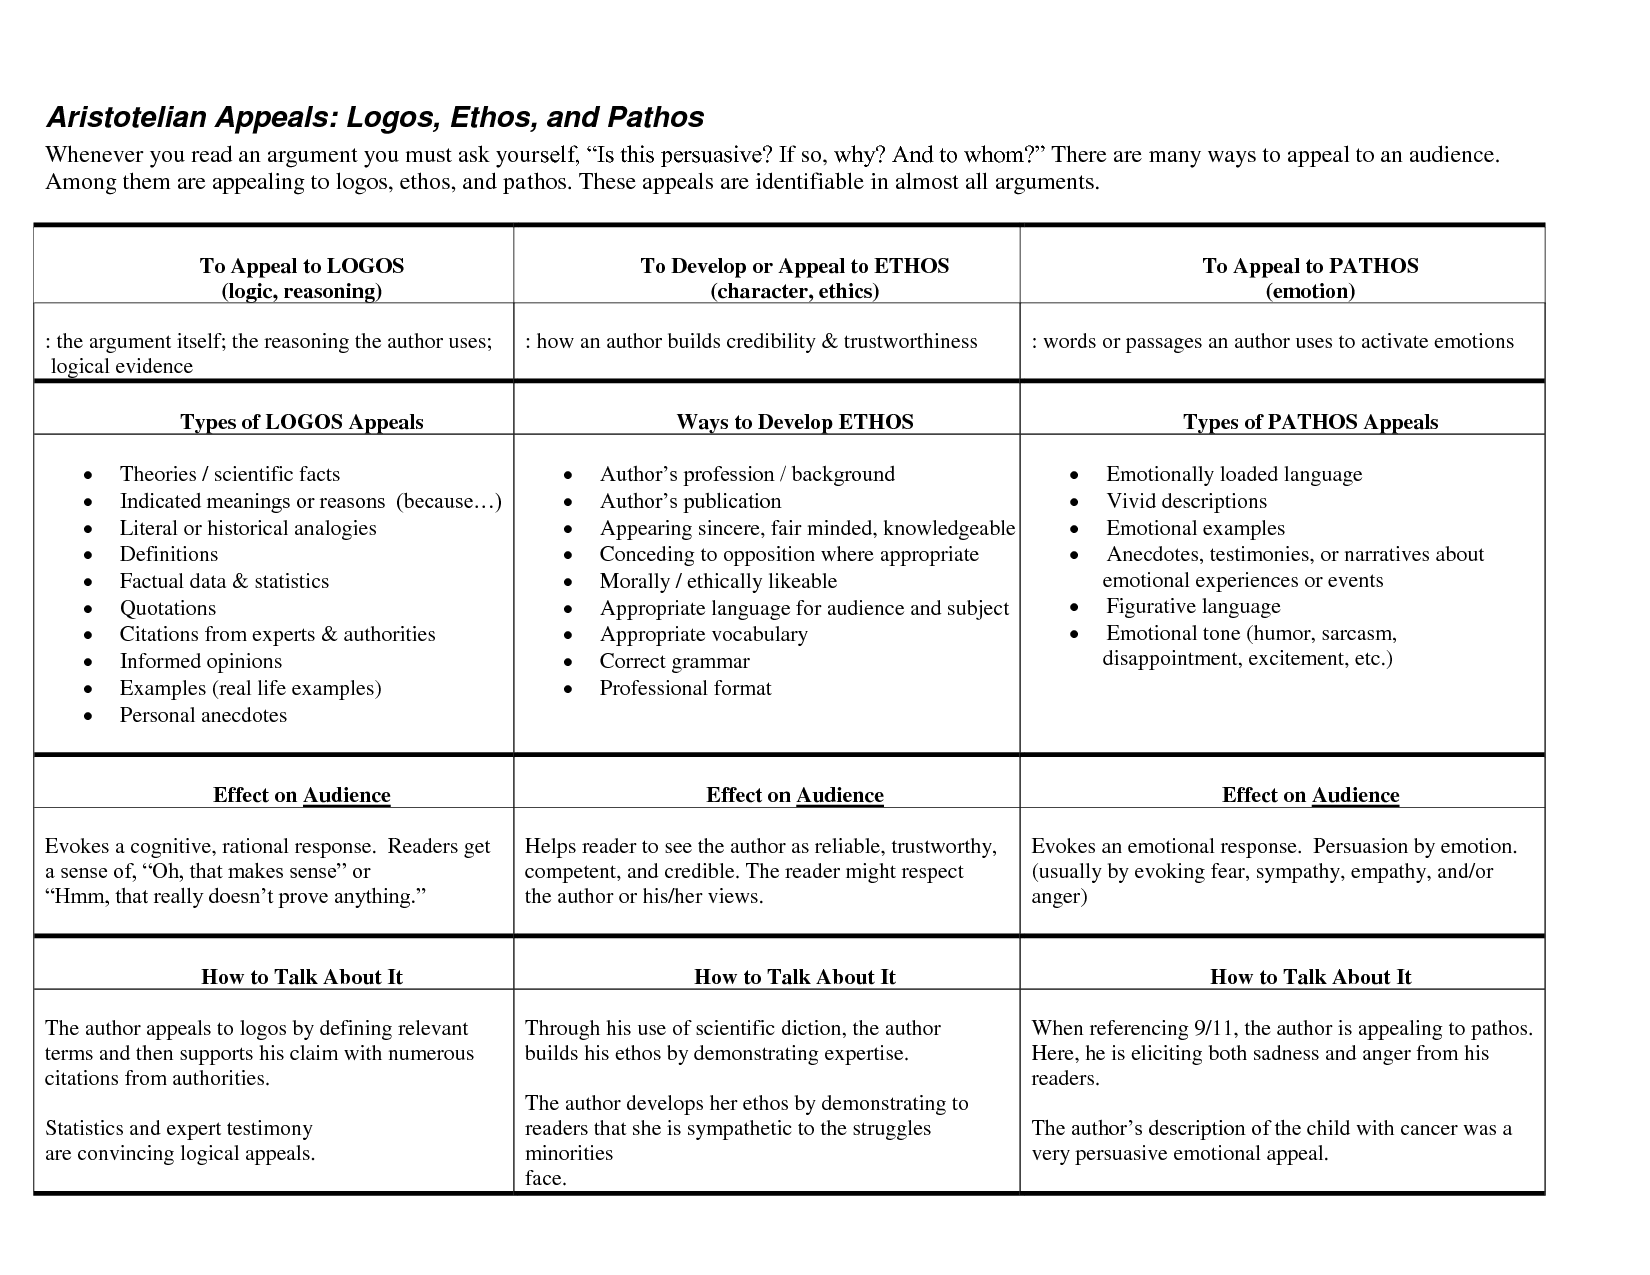 Logos Ethos Pathos Worksheet - Sharebrowse